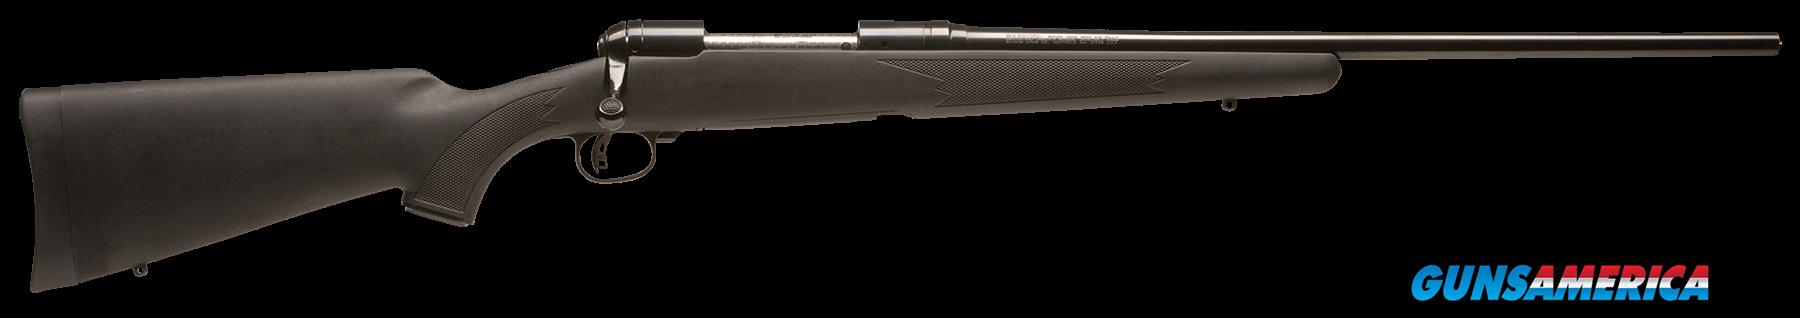 "Savage 17792 11/111 FCNS Bolt 7mm Rem Mag 24"" 3+1 Accustock Black Stk Blued  Guns > Rifles > S Misc Rifles"